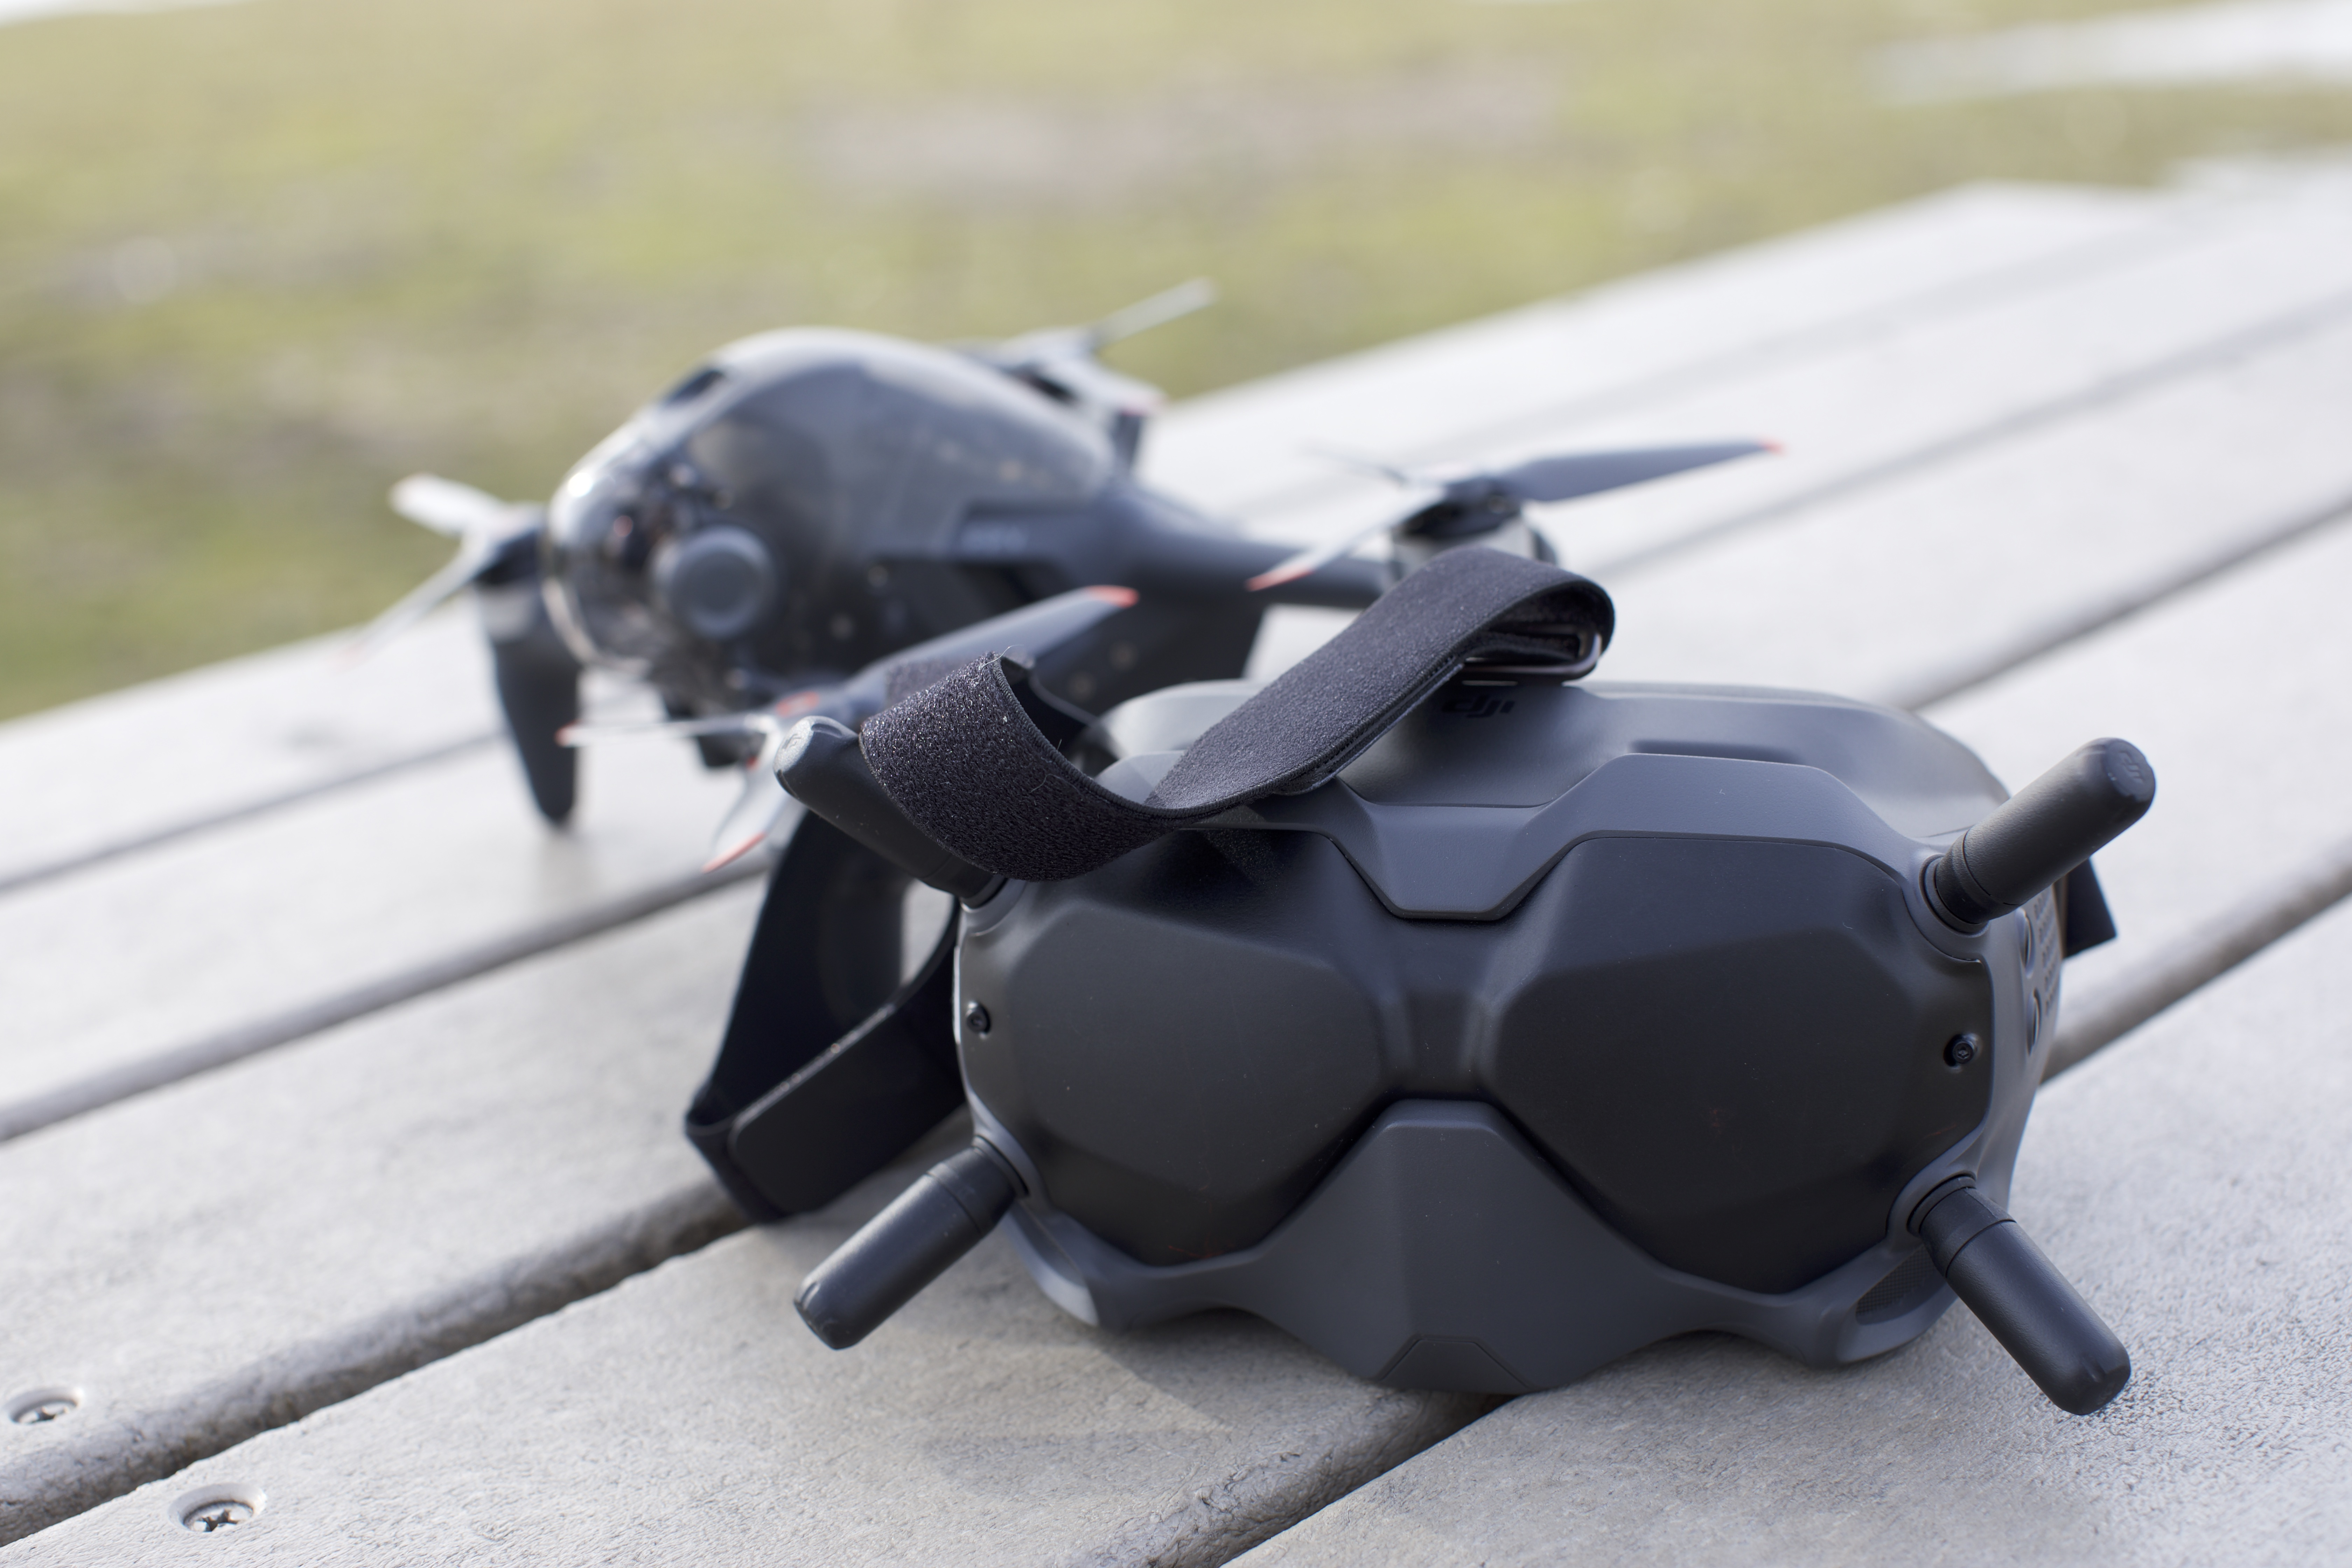 DJI launches an all-in-one FPV drone system